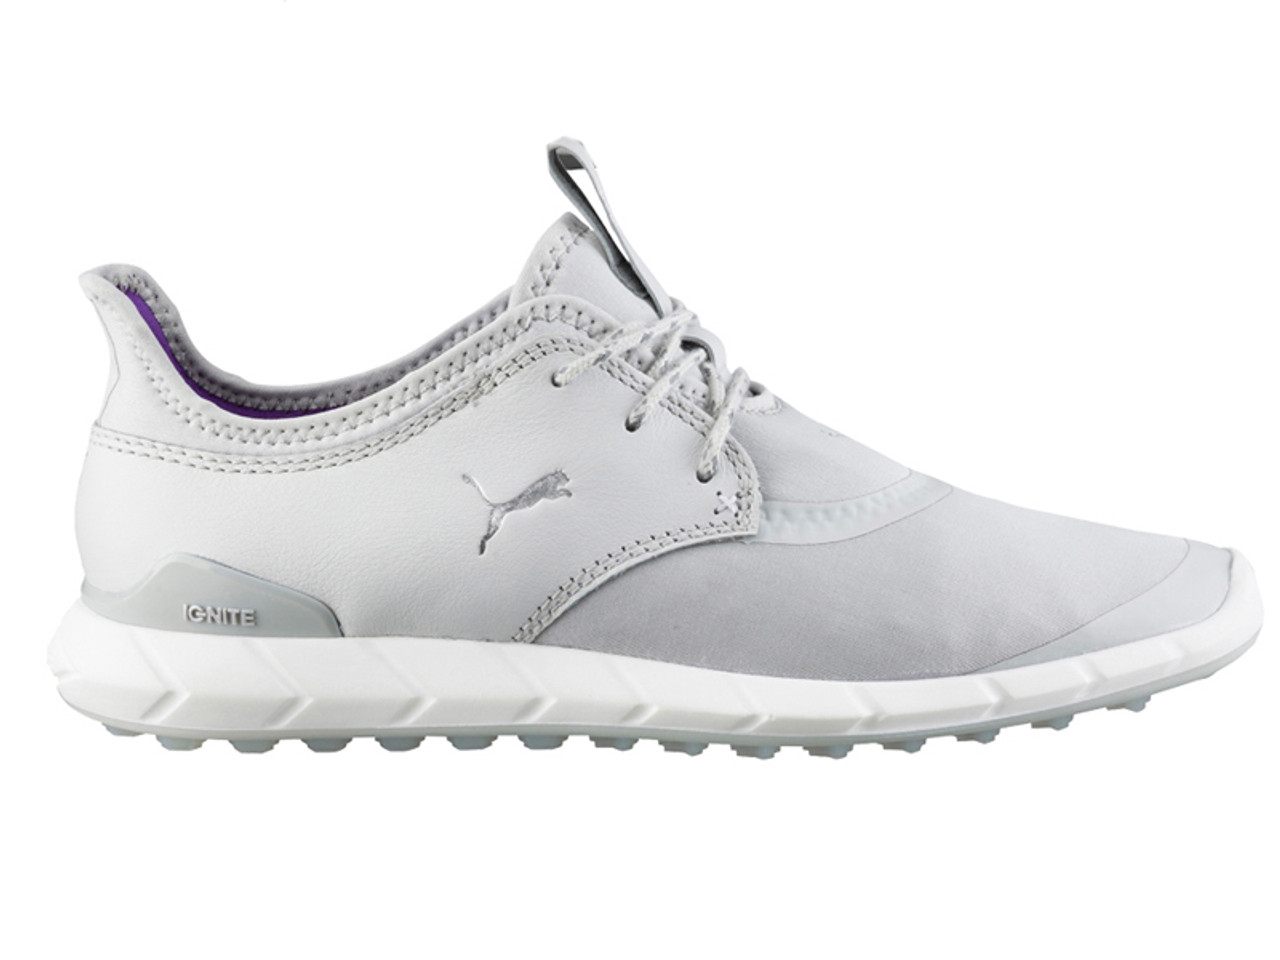 Puma Ladies Ignite Spikeless Sport Golf Shoes Grey Violet